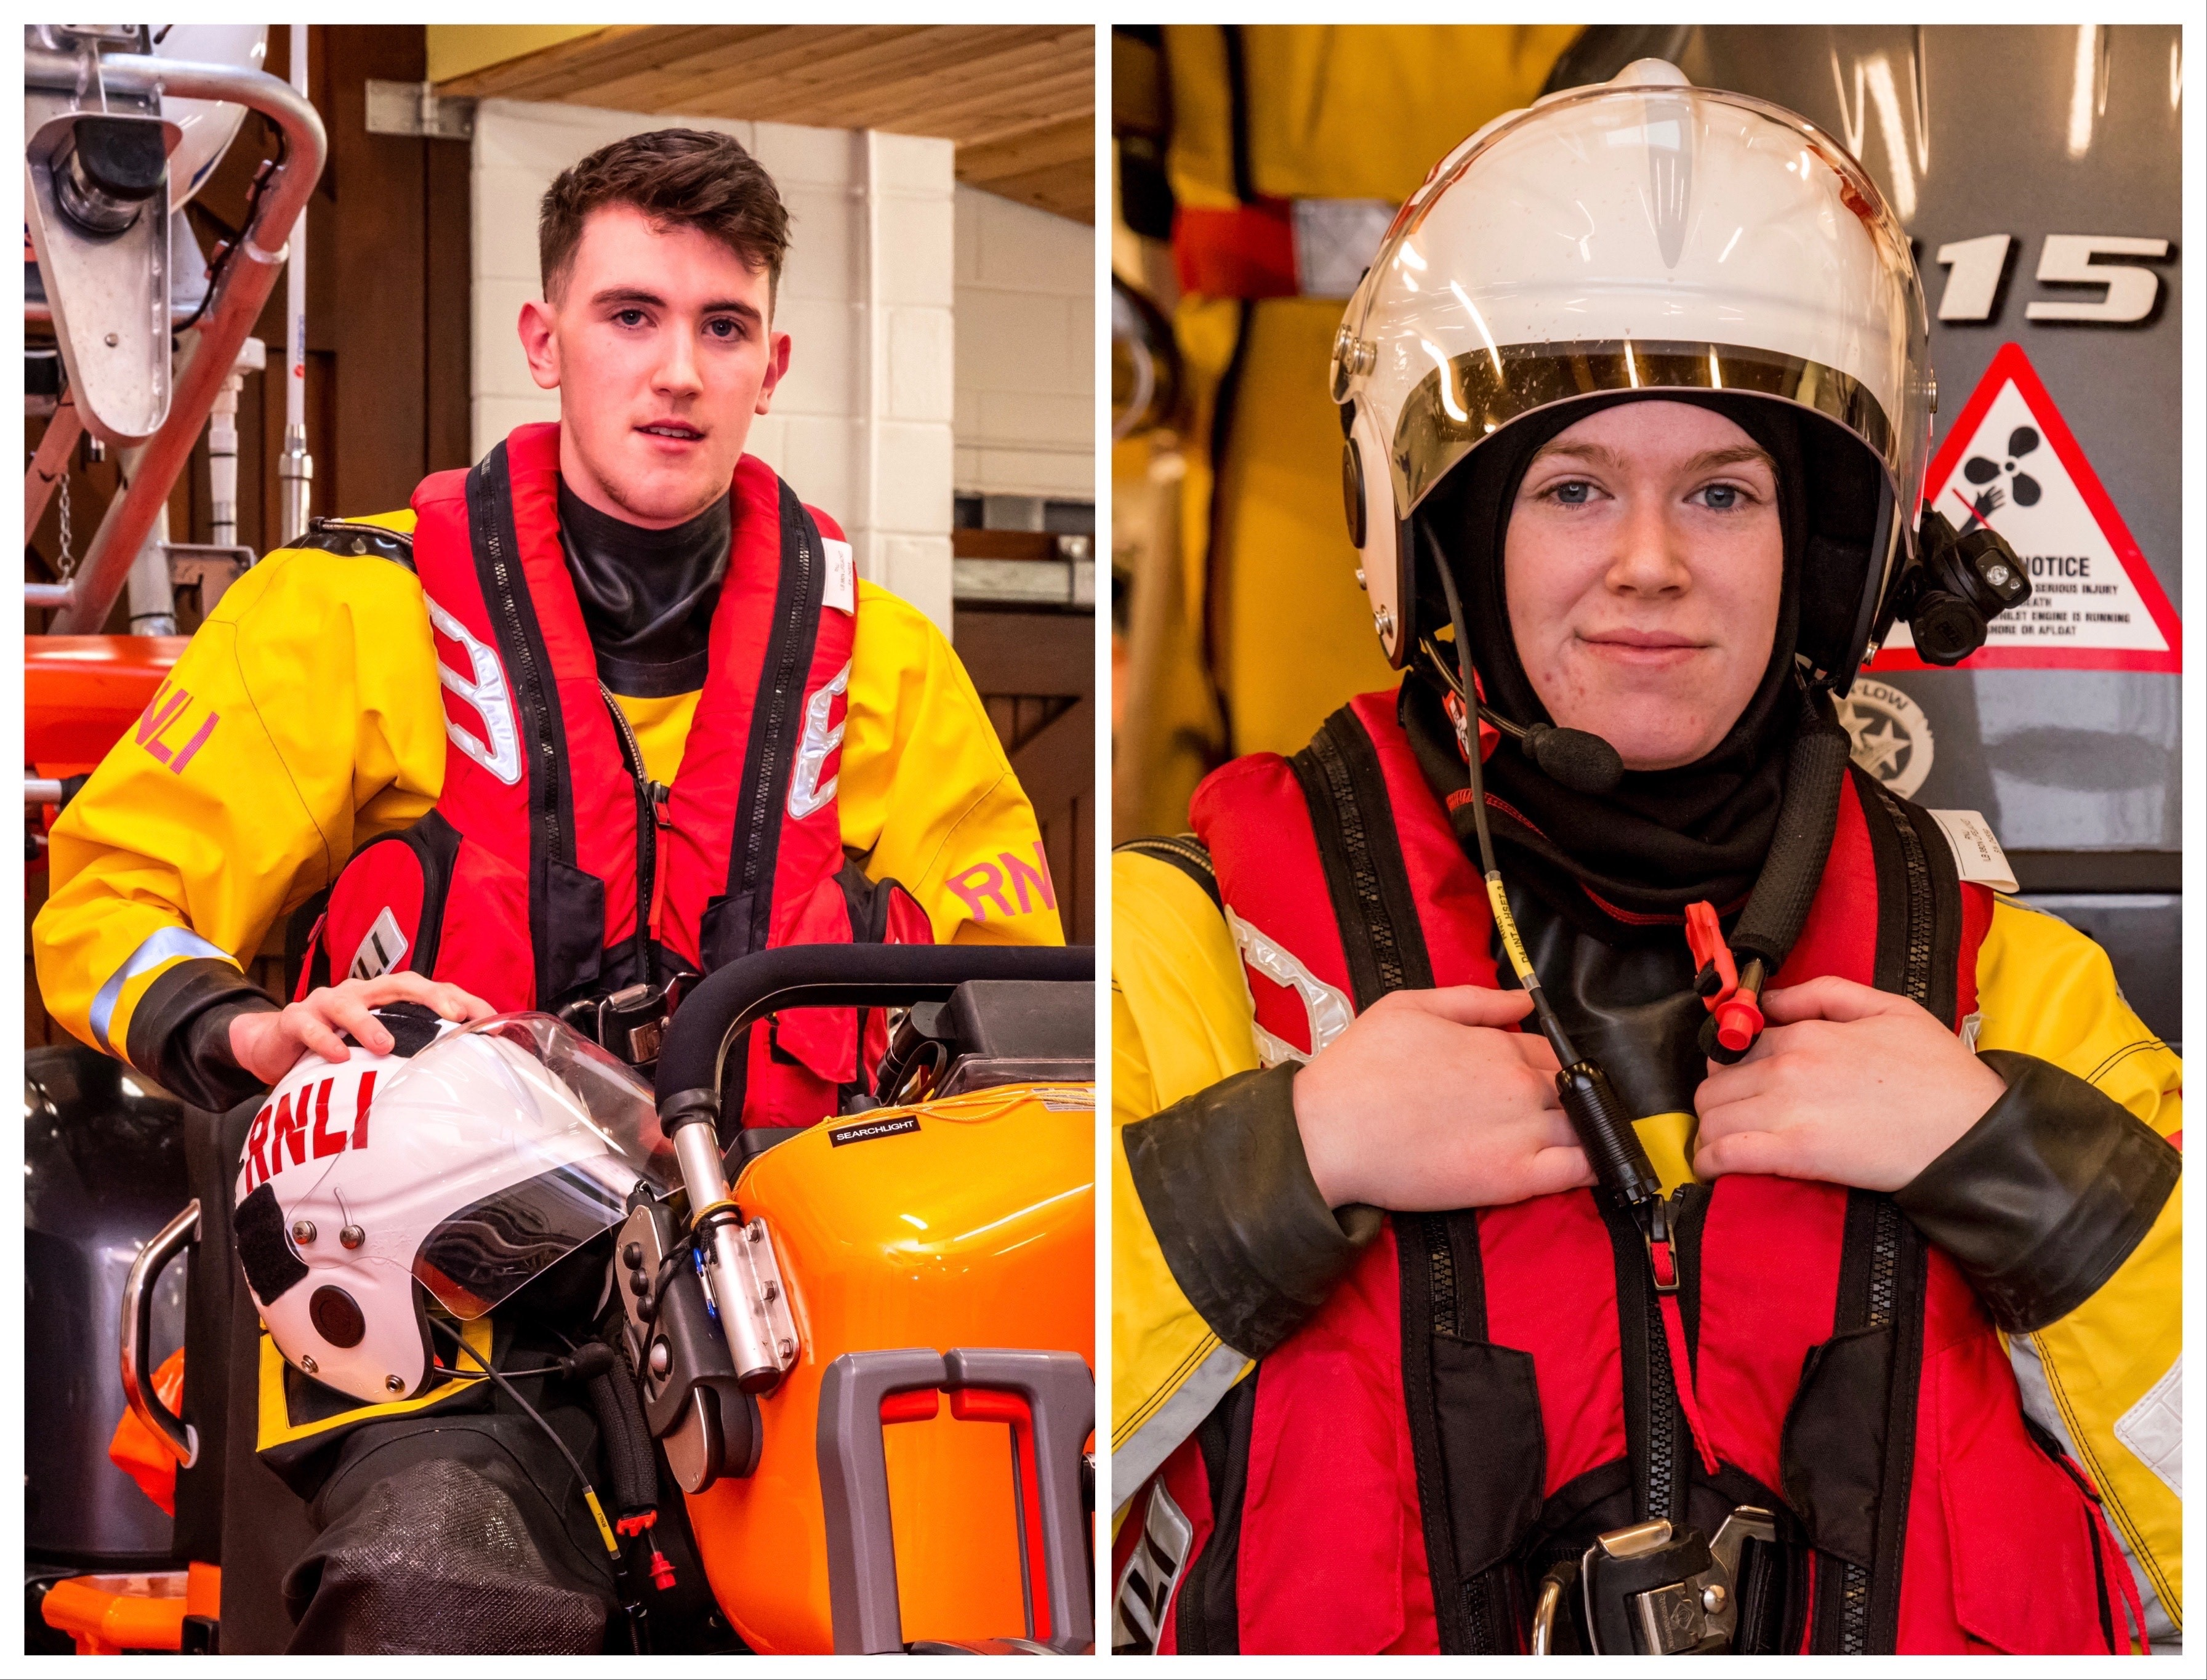 Million-pound training fund helps local lifesaver learn vital skills